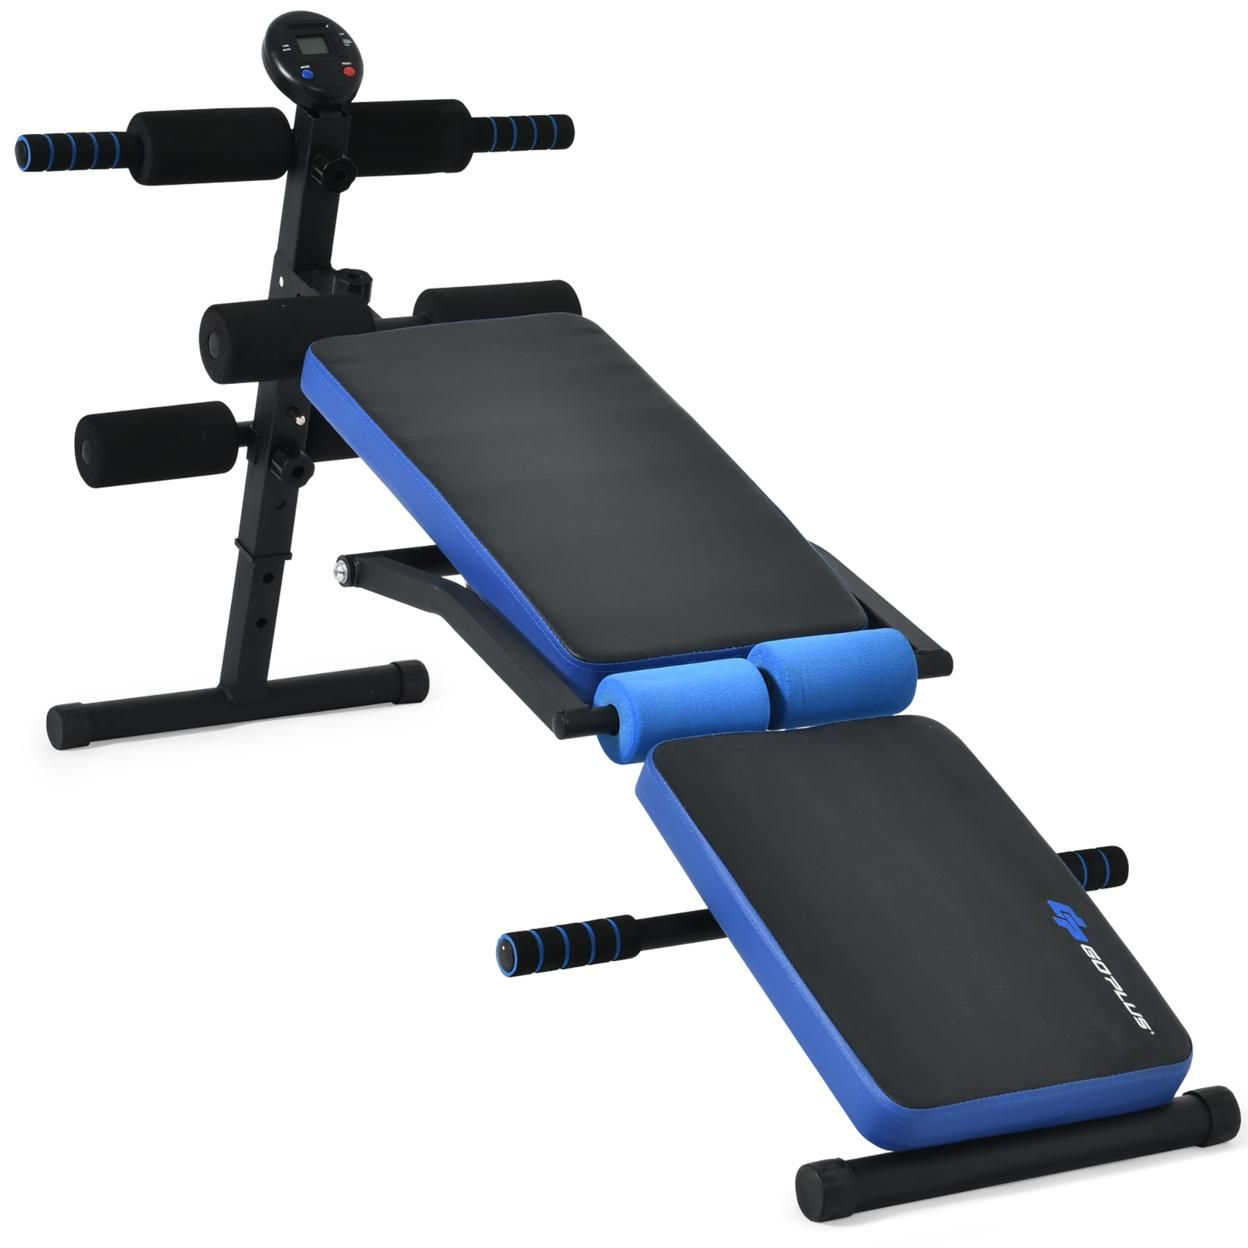 Goplus  Multi-Functional Foldable Weight Bench Adjustable Sit-up Board w/ Monitor Red\Blue